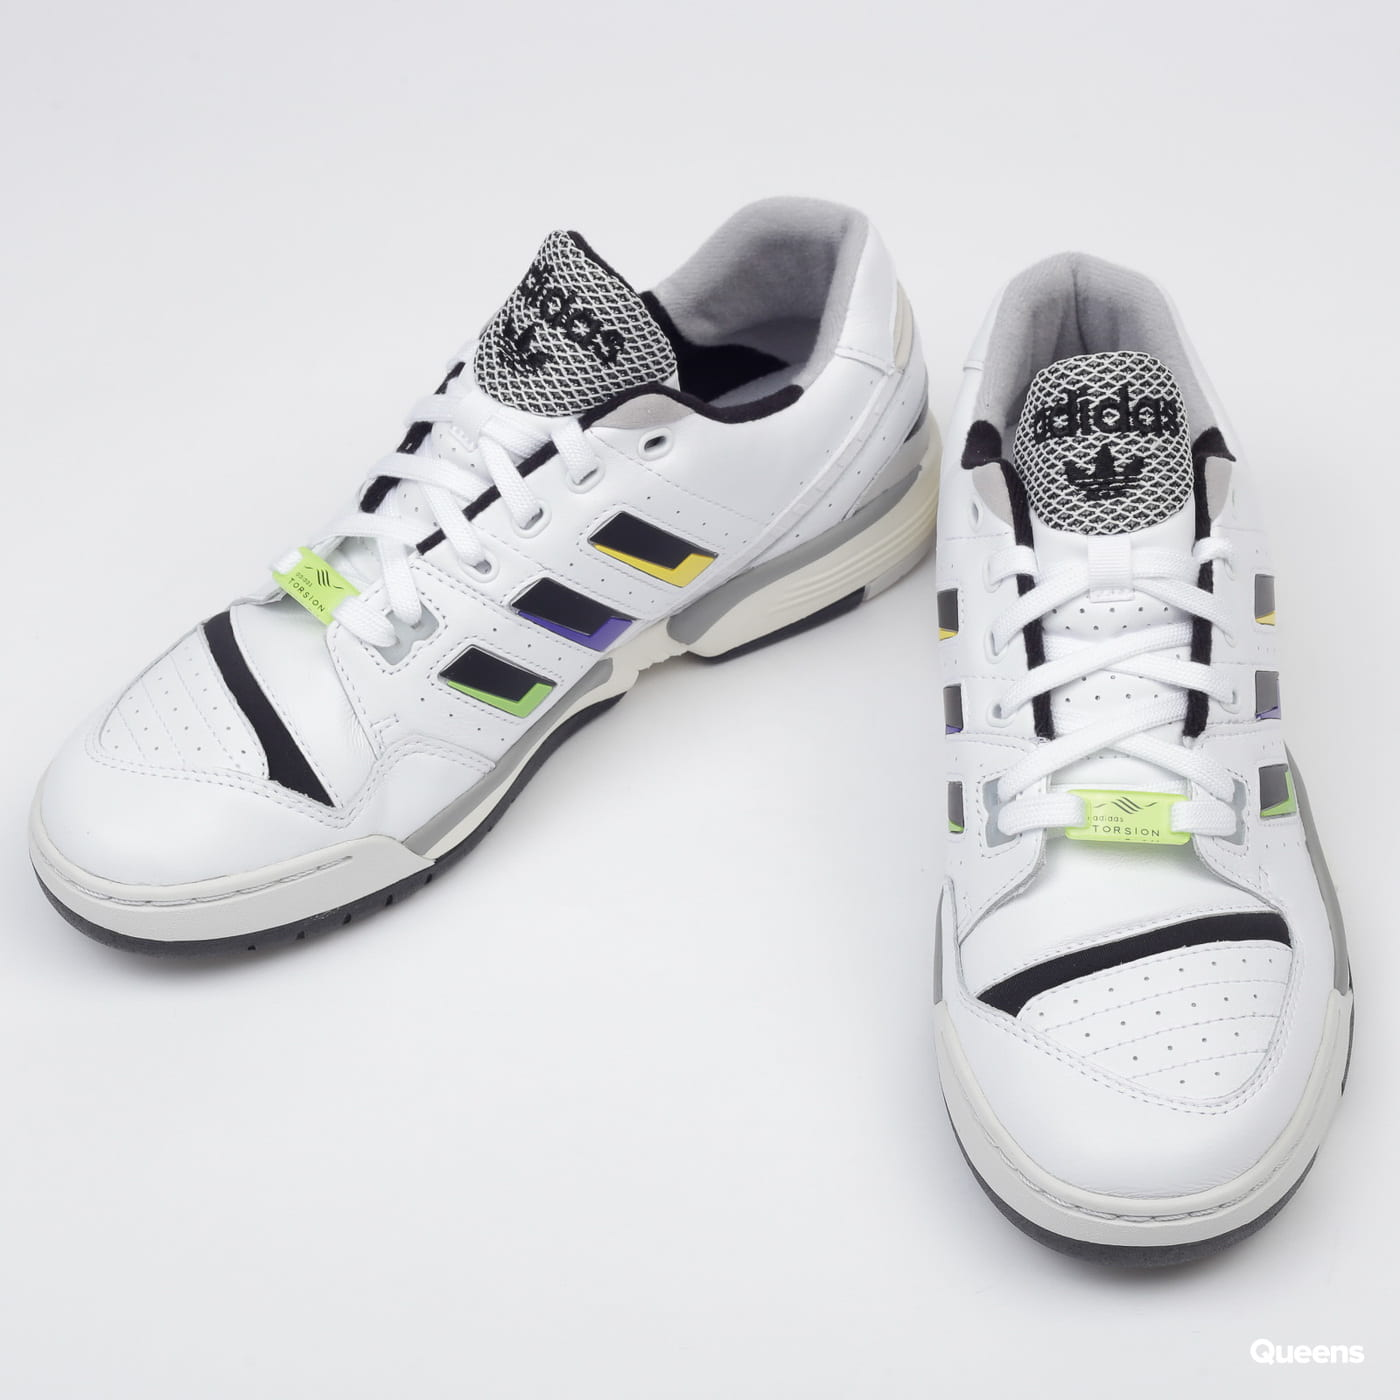 adidas Originals Torsion Comp ftwwht / cblack / syello